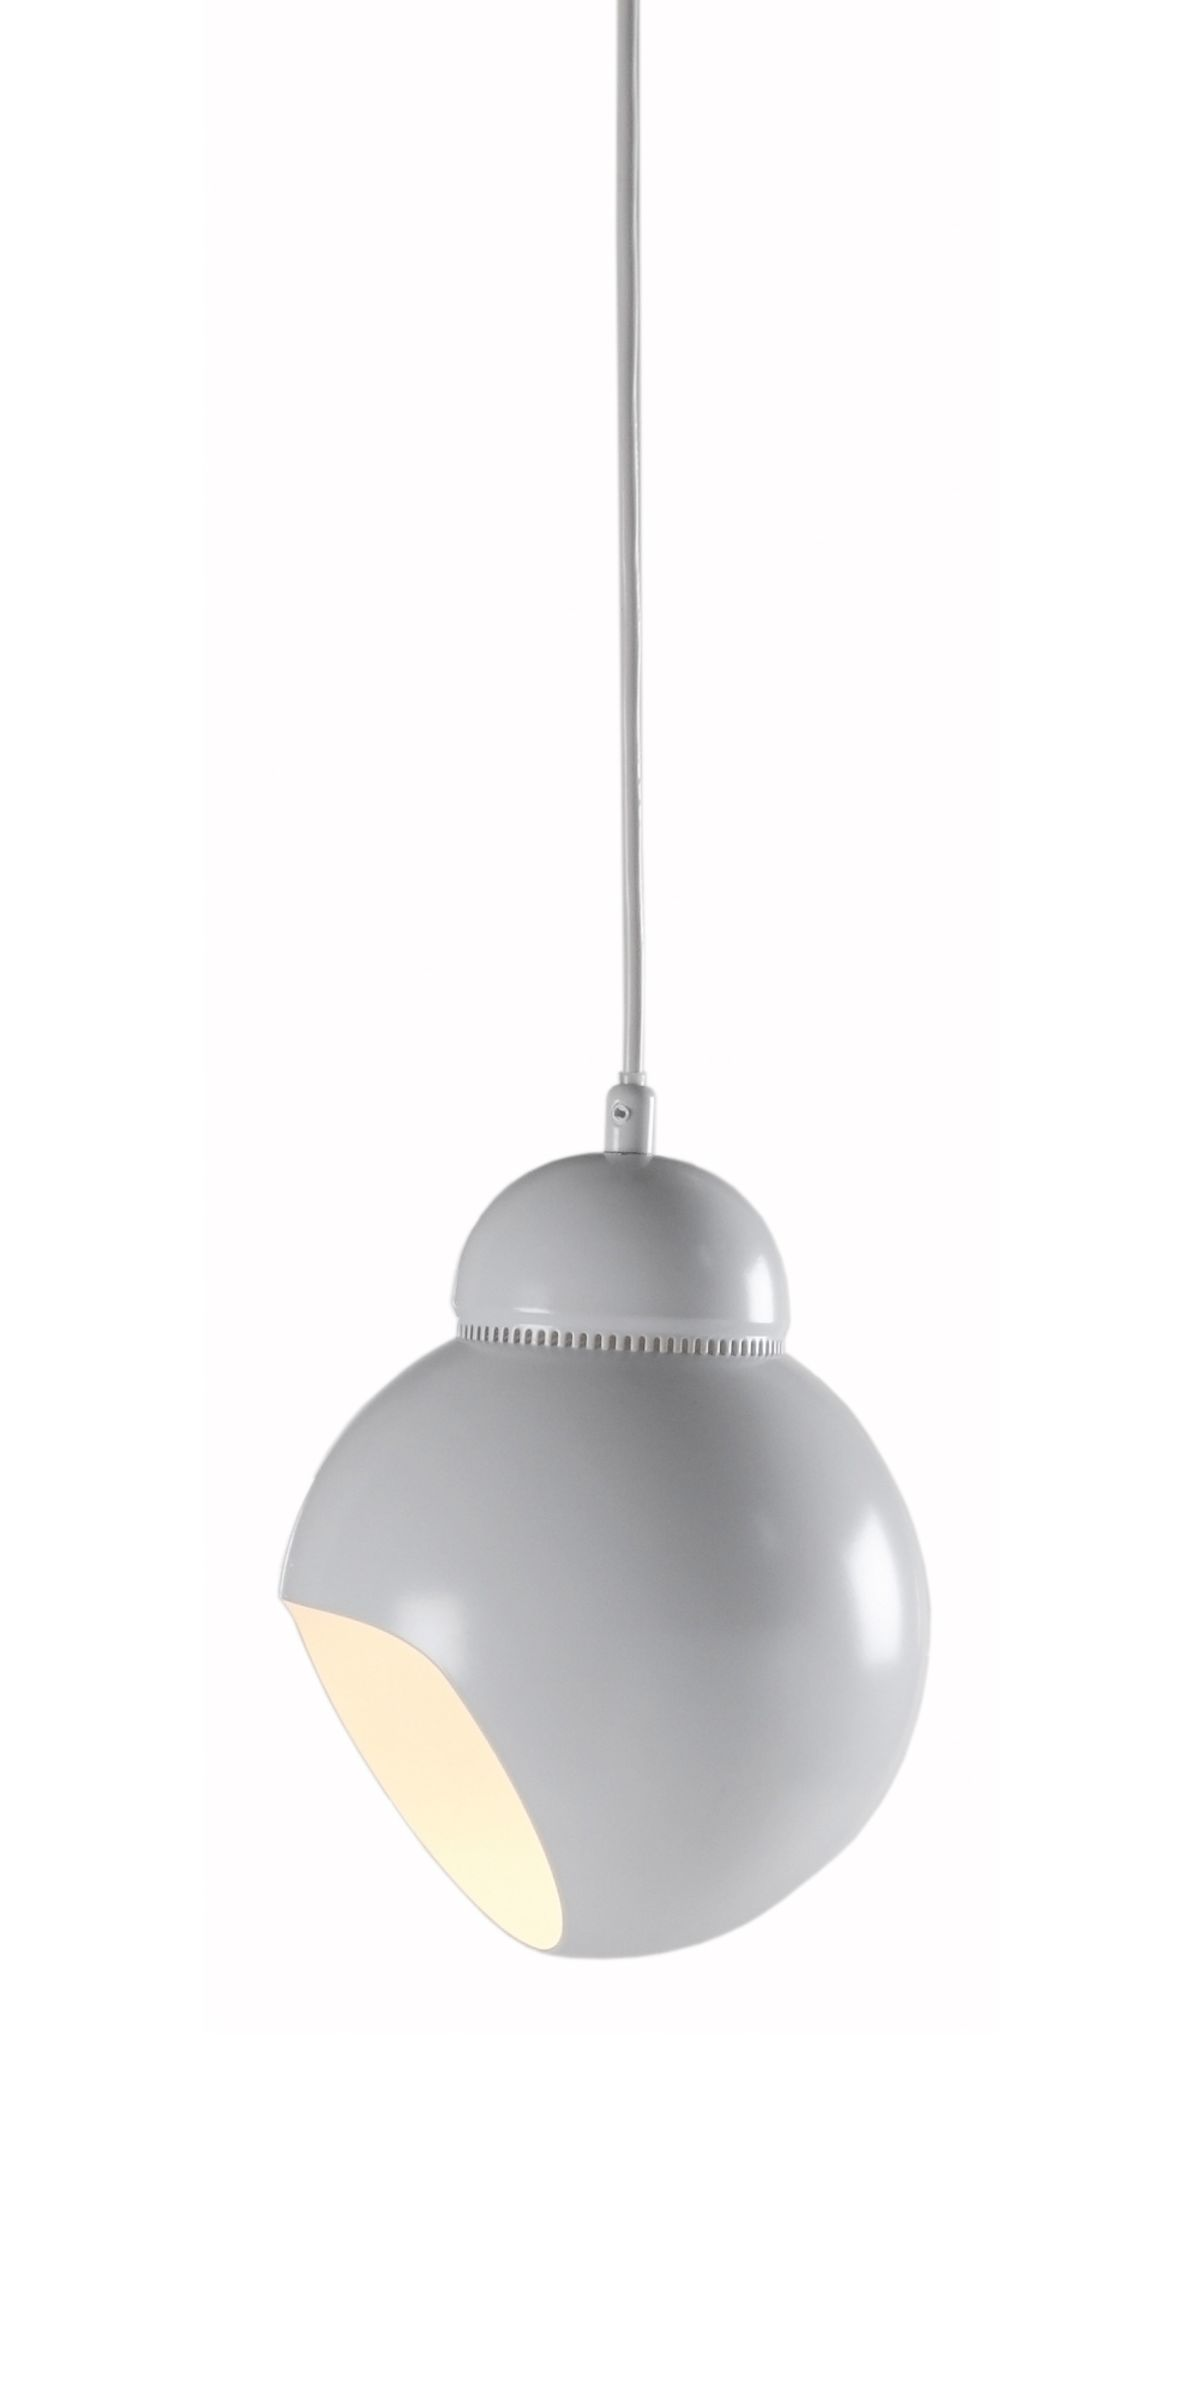 "Pendant Light A338 ""Bilberry"" cut out - on"